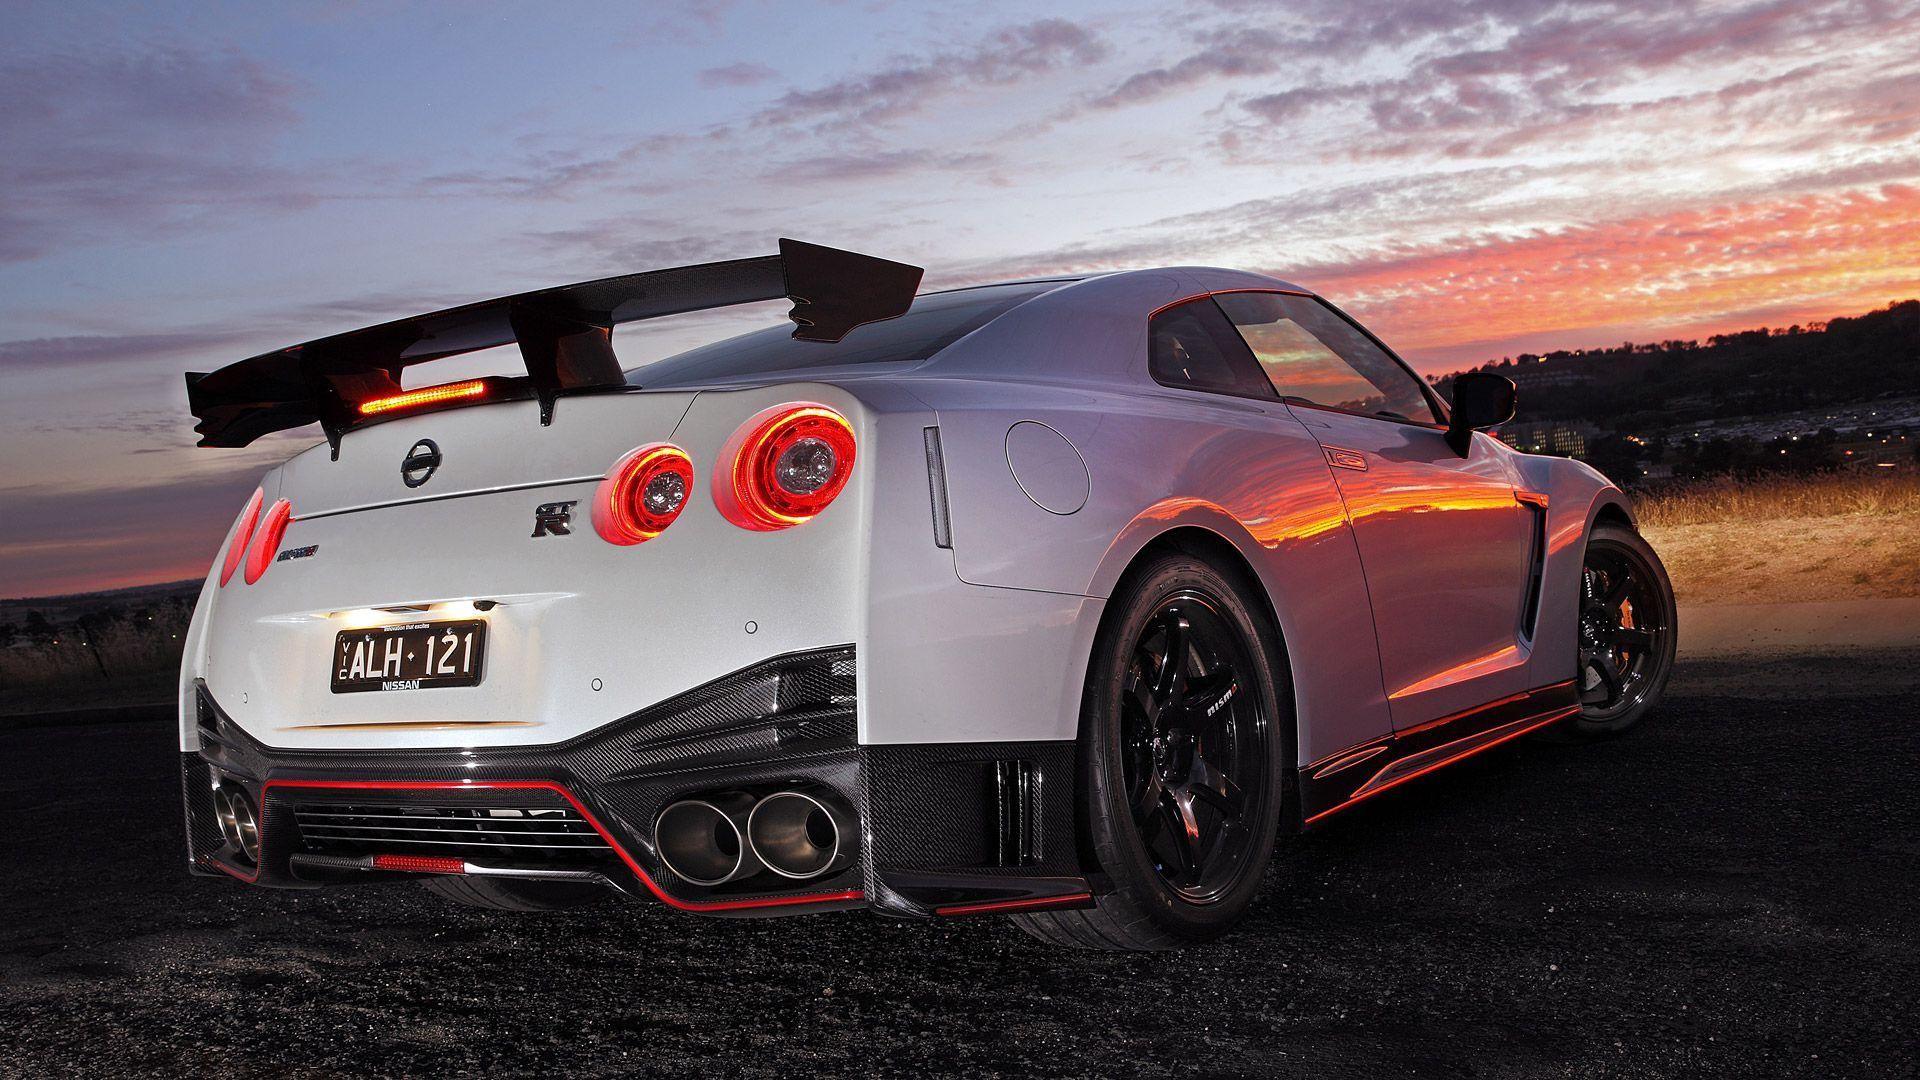 Download Nissan Gtr Wallpaper 1080p Hd Backgrounds Download